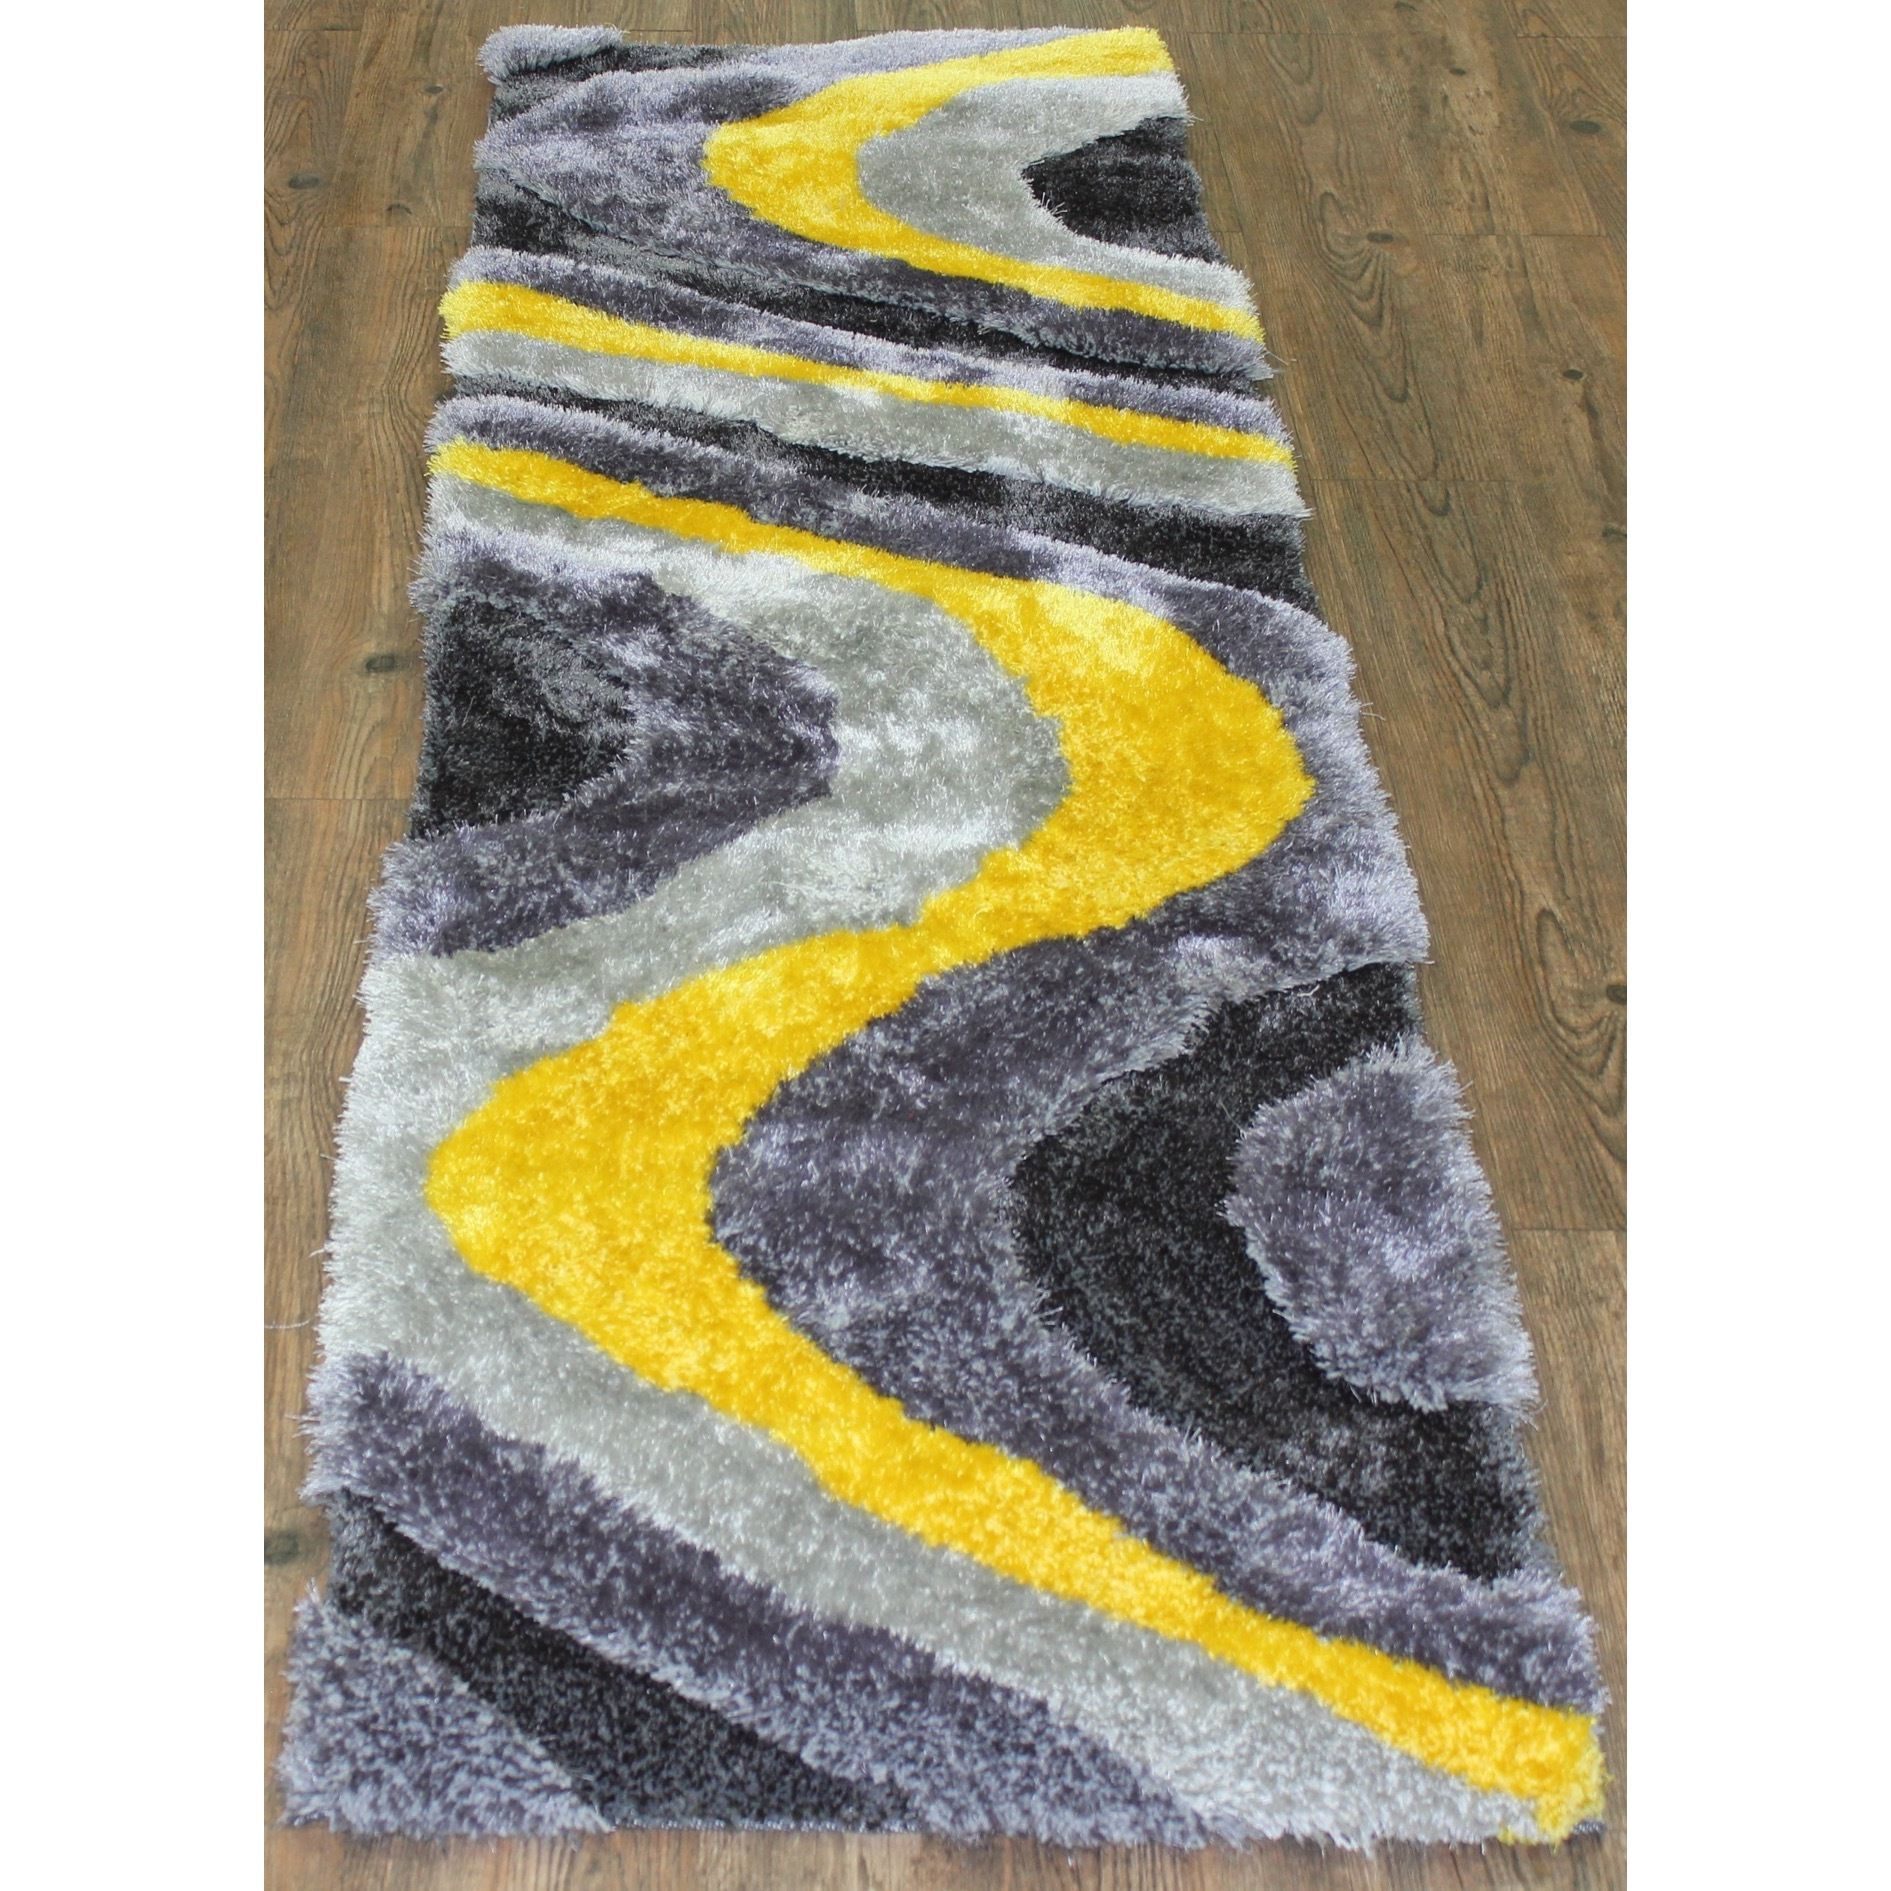 Dazzling Shaggy Area Rug Runner Featuring Vibrant Shades of Yellow Silver and Gray